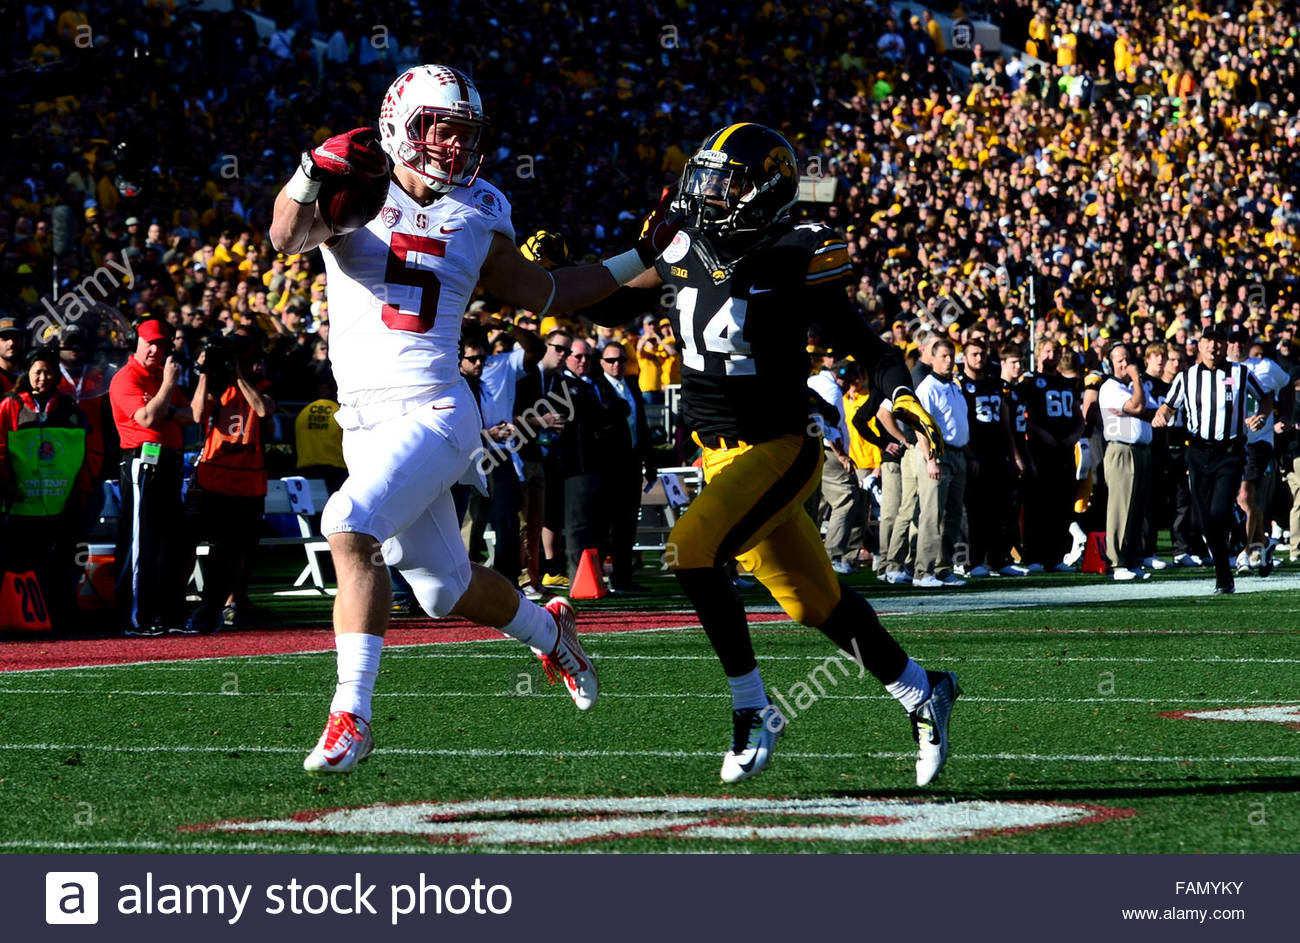 Pasadena, California, USA. 01st Jan, 2016. Stanford running back Christian McCaffrey (5) catches a pass for a 75 - Stock Image